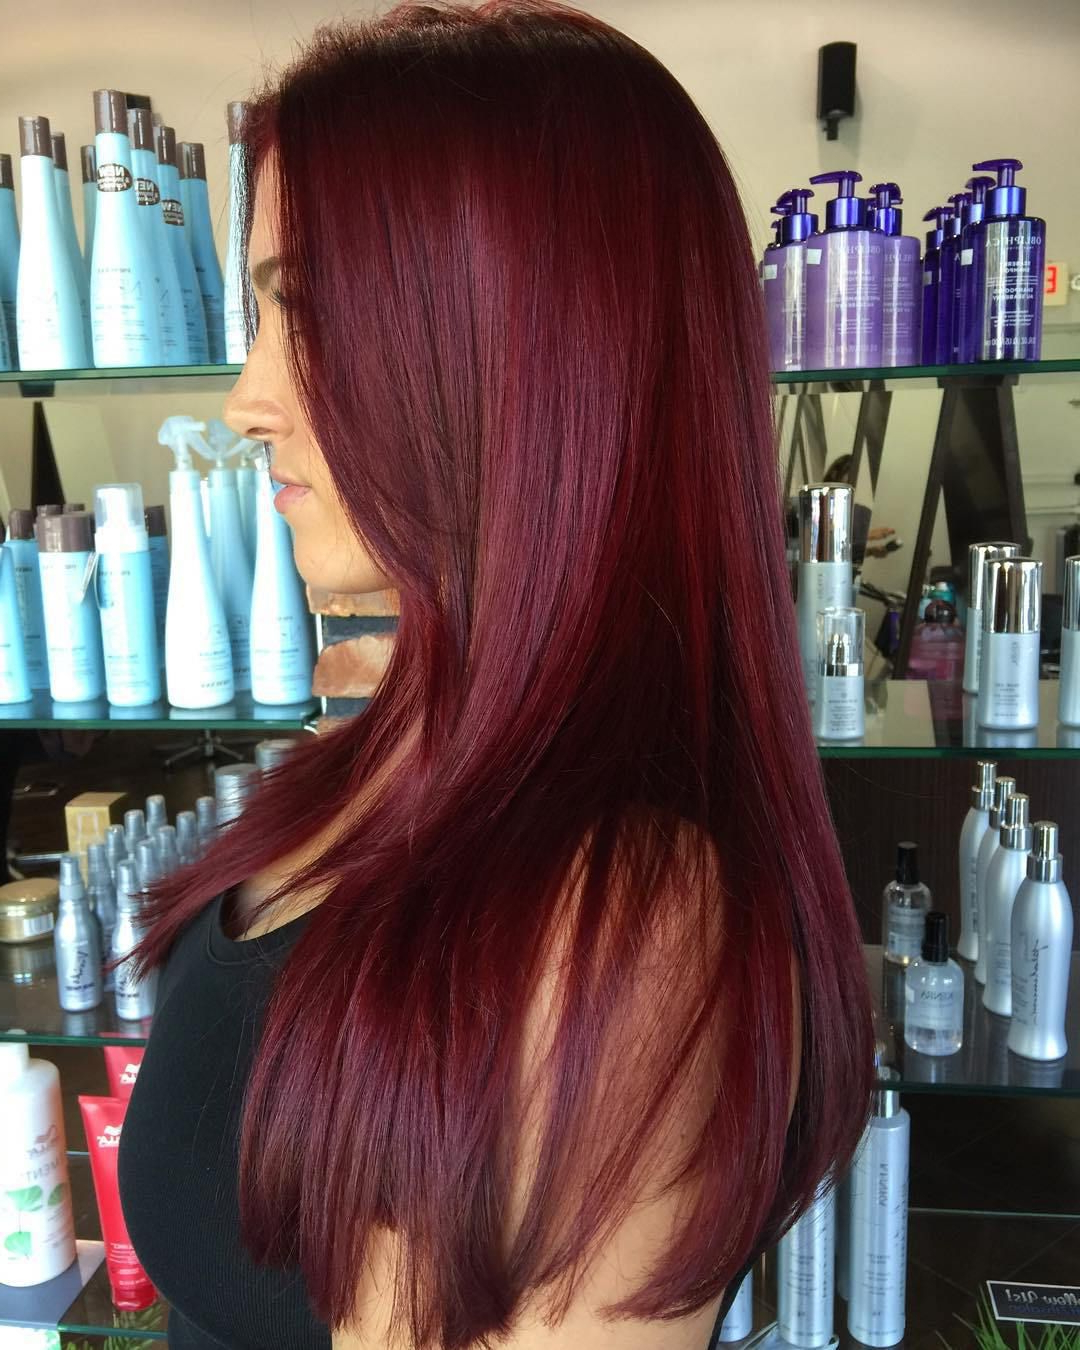 Most Popular Red And Black Medium Hairstyles Inside 45 Shades Of Burgundy Hair: Dark Burgundy, Maroon, Burgundy With Red (View 18 of 20)